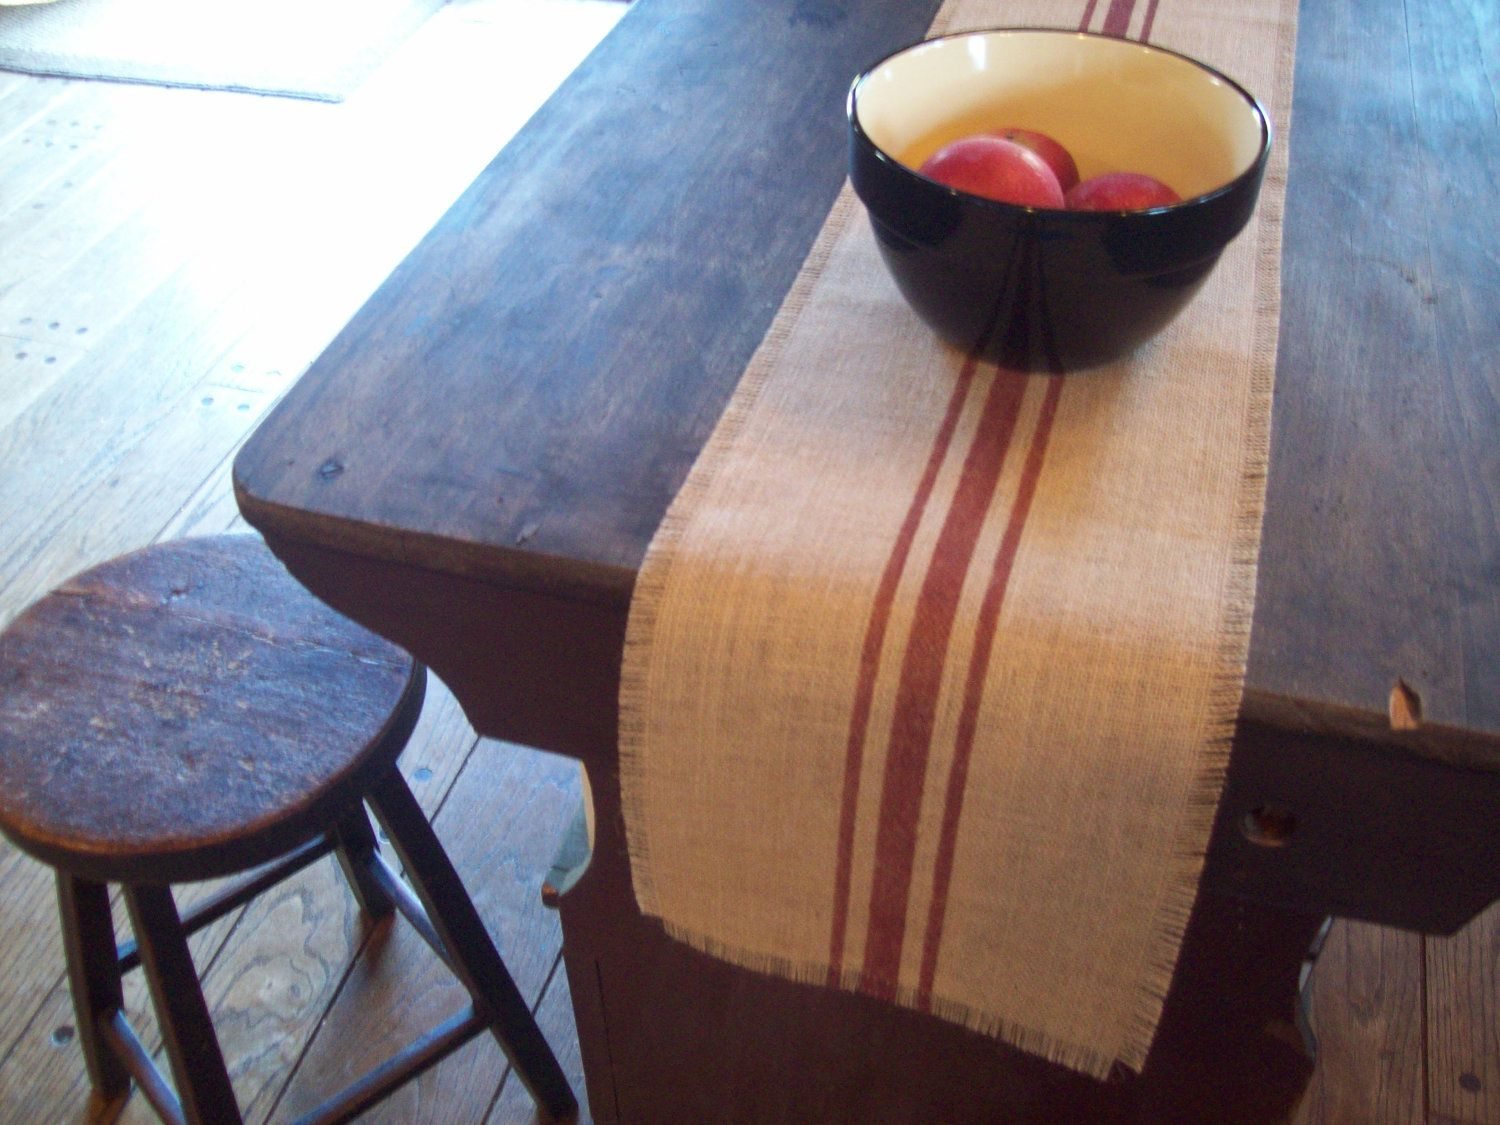 Farmhouse Style Table Runners Burlap Table Runner With Hand Painted Grain Sack Style